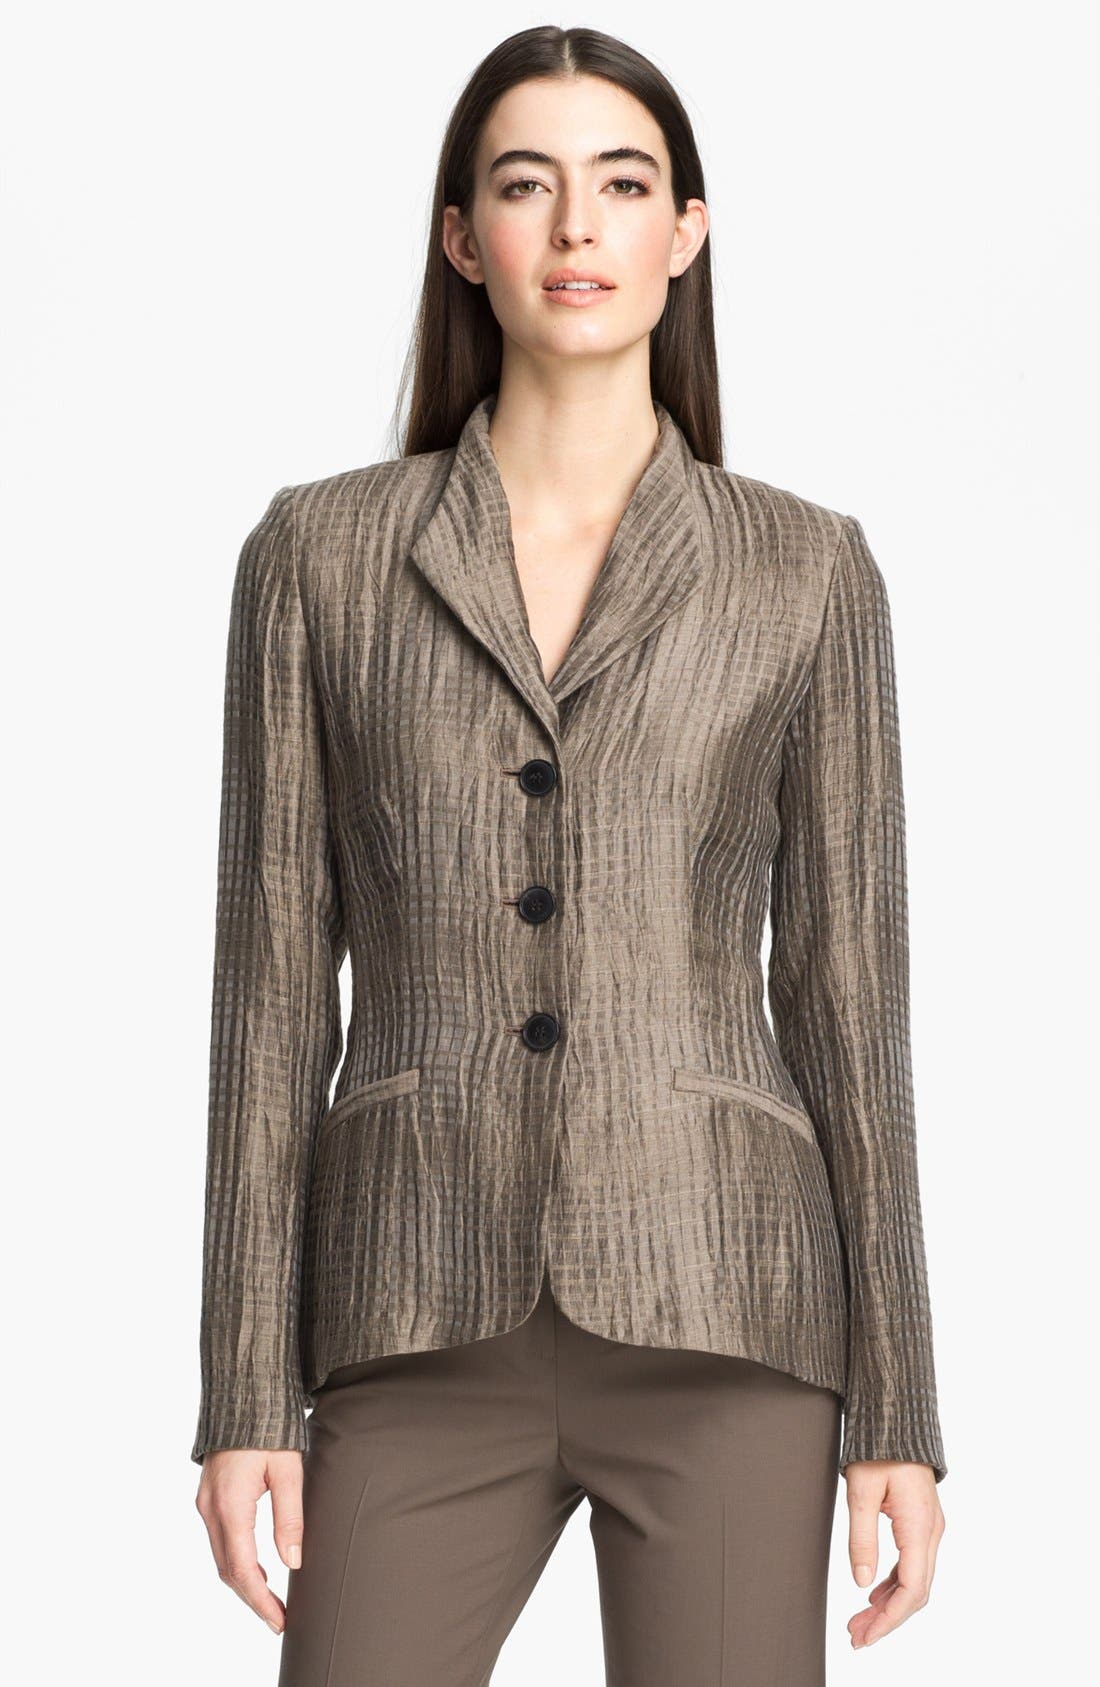 Alternate Image 1 Selected - Lafayette 148 New York 'Beau - Thatched Linen' Jacket (Petite)